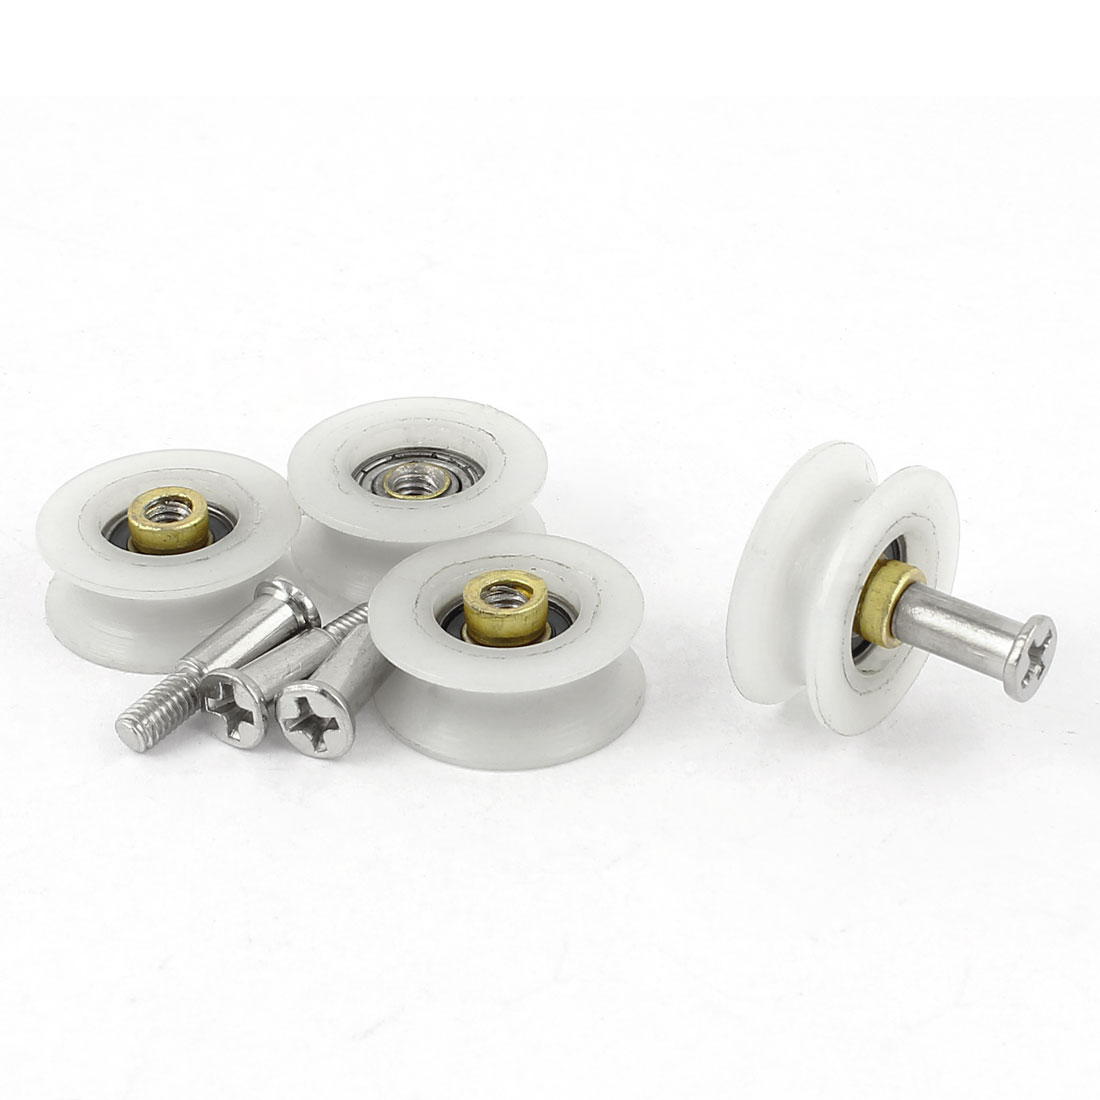 4 Pcs Nylon Roller Sliding Door Window Weight Pulley w Phillips Drive Flat Head Screw